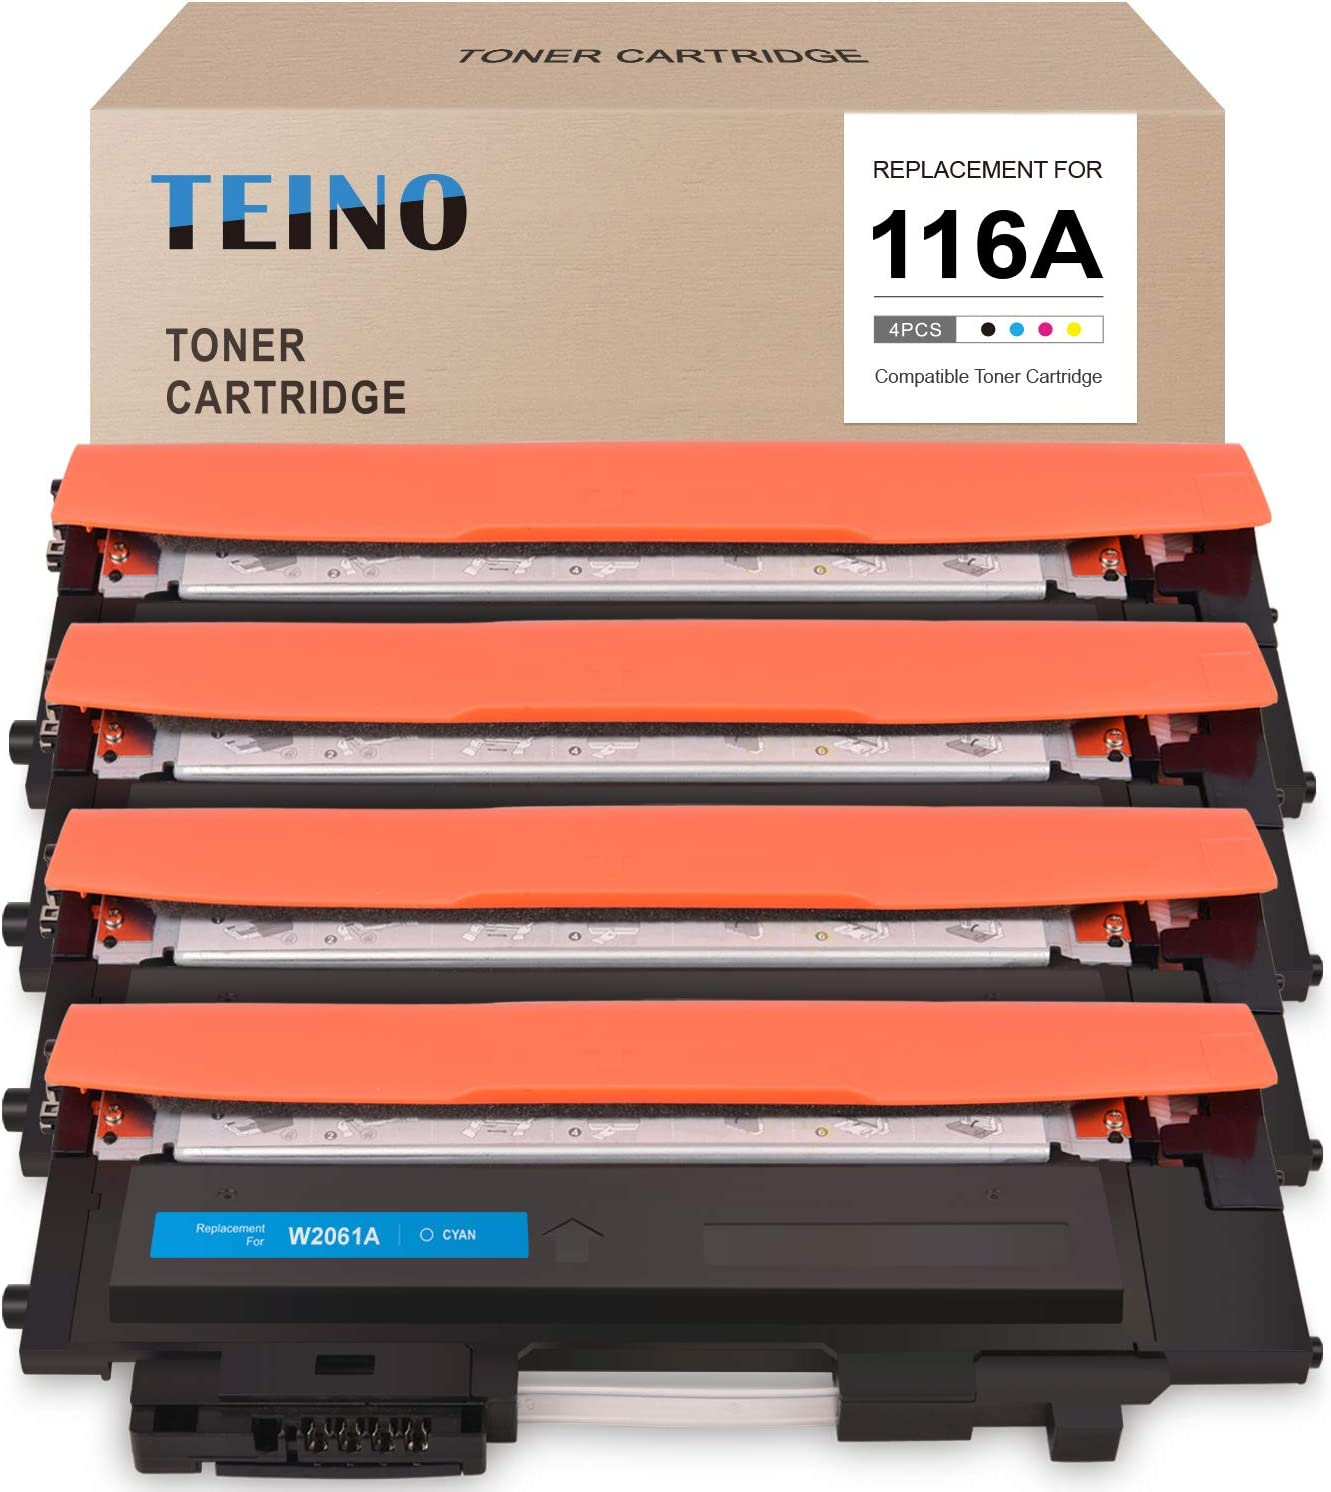 TEINO Compatible Toner Cartridge Replacement for HP 116A W2060A W2061A W2062A W2063A use with HP Color Laser MFP 178nw 179fnw Color Laser 150nw (Black, Cyan, Magenta, Yellow, 4-Pack)